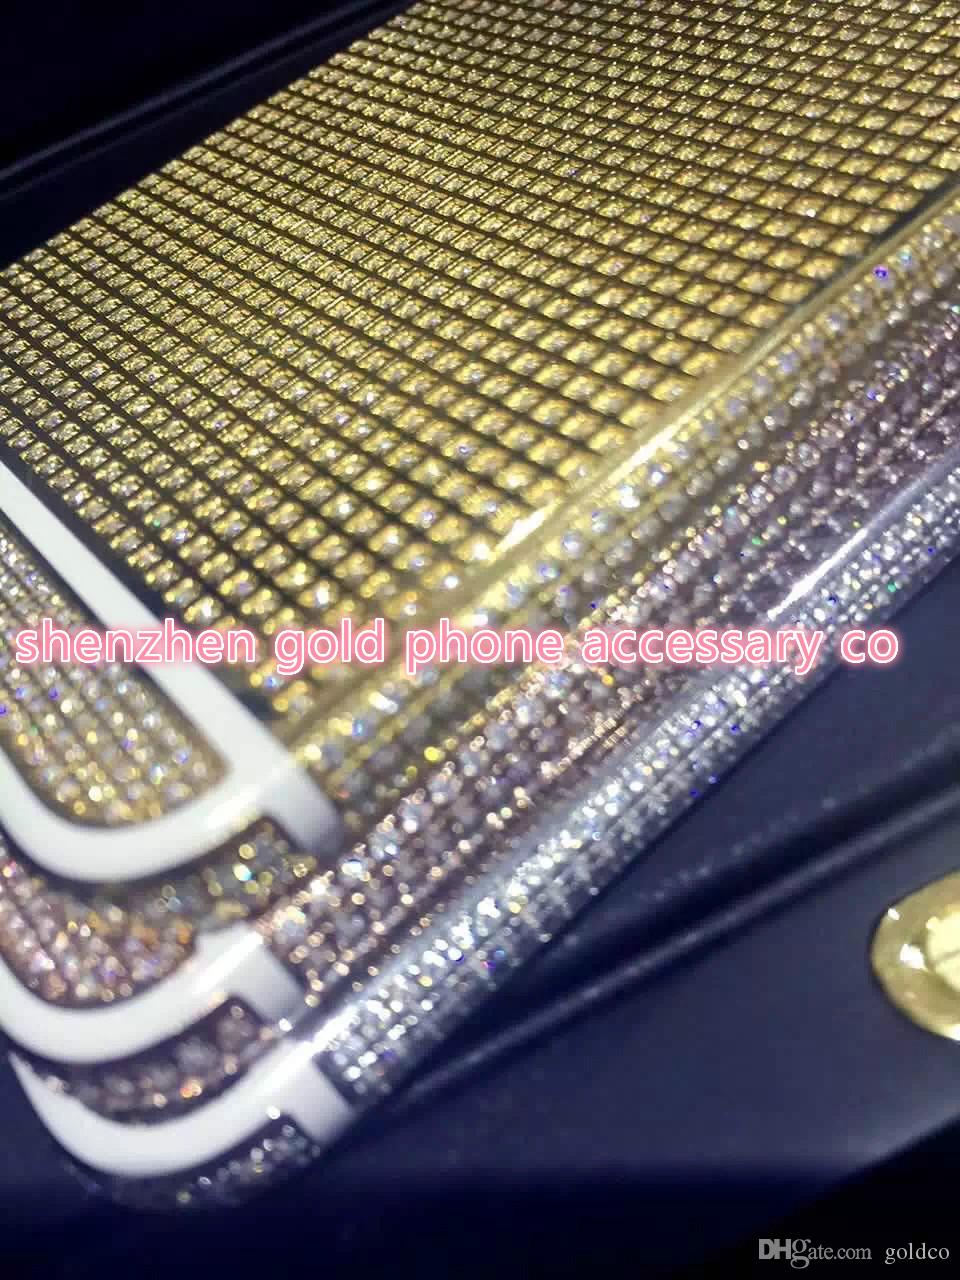 2016 real 24K Gold FULL DIAMOND crystal Plating Battery Back Housing Cover Skin for iPhone 6 4.7 24kt 24ct Limited Edition Gold cases